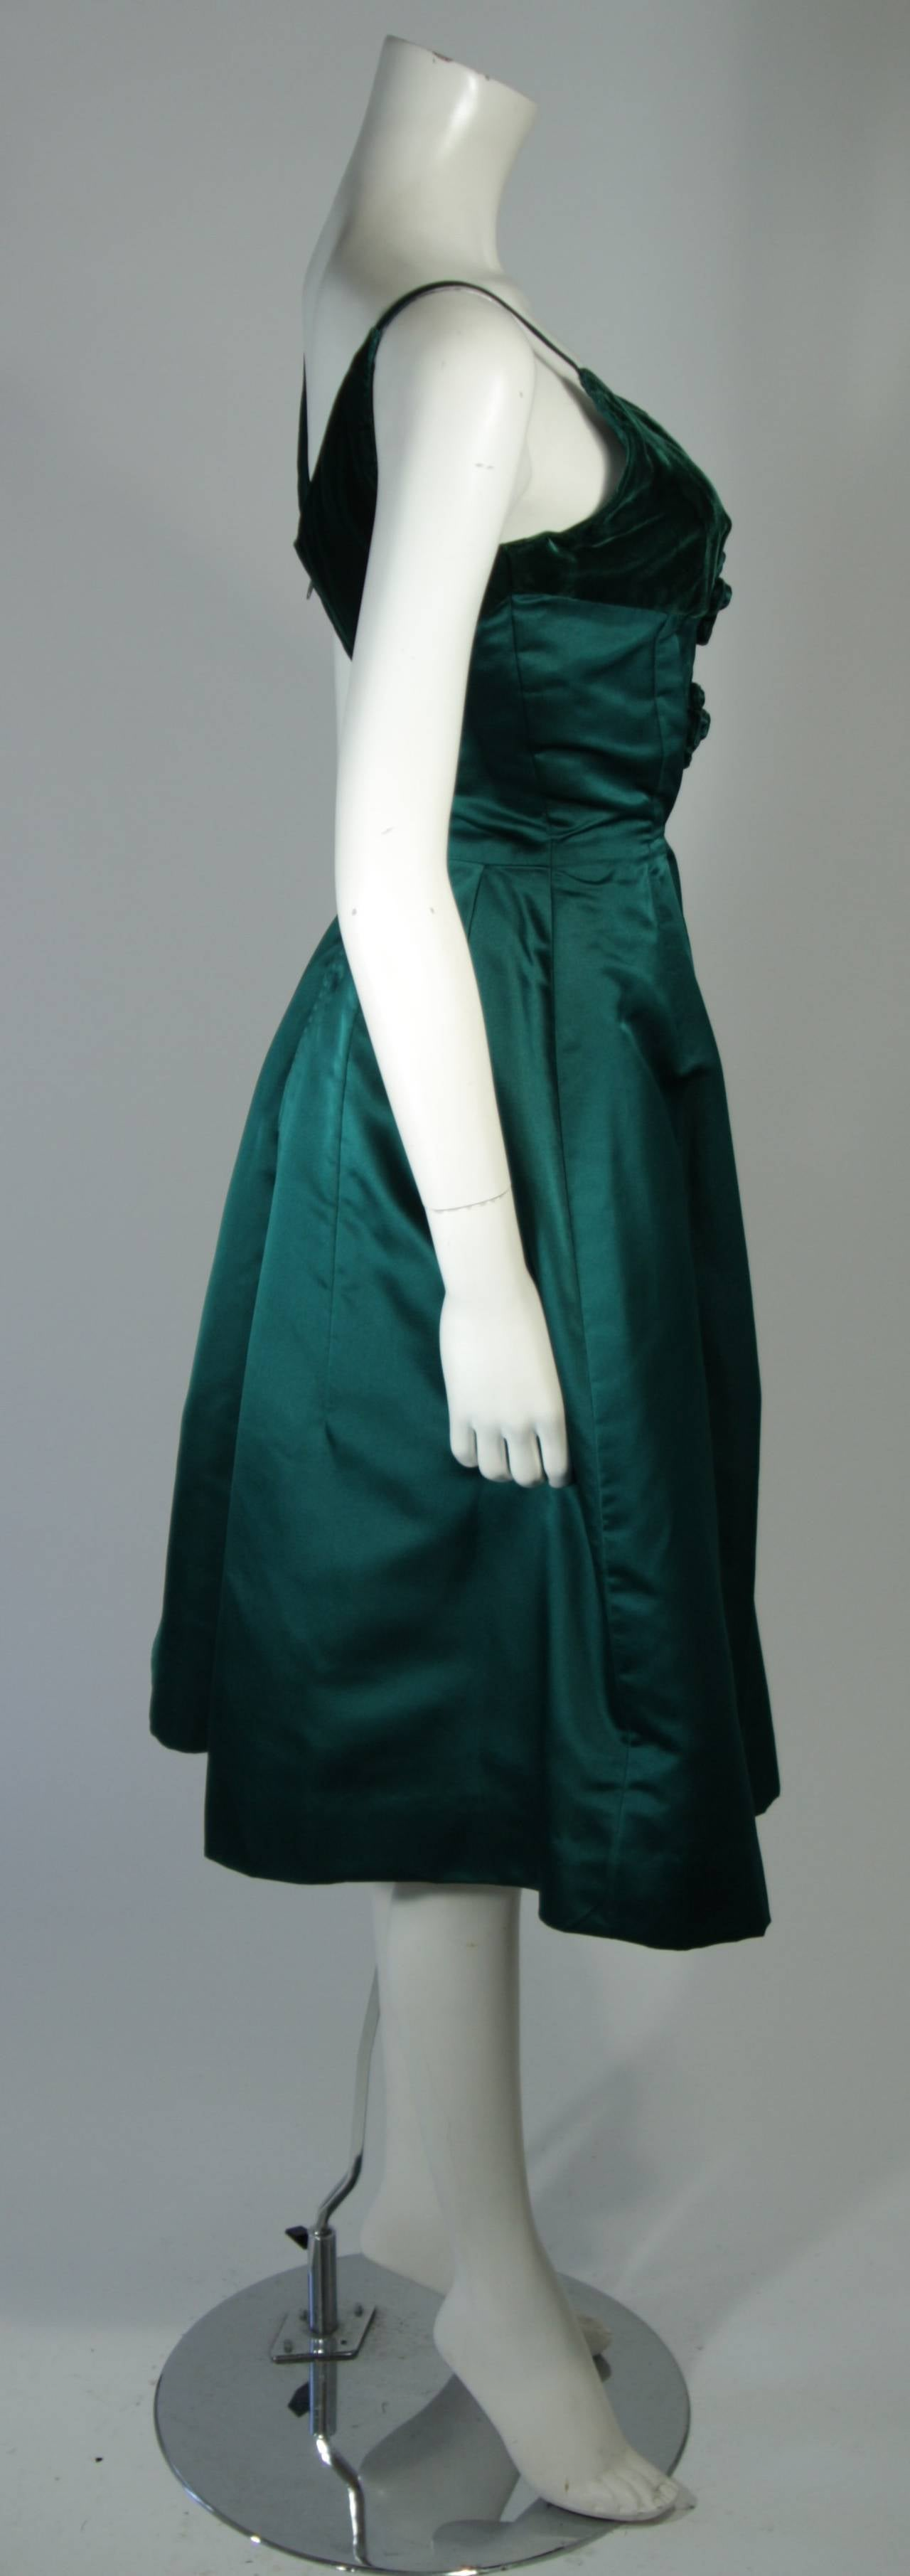 Oleg Cassini Emerald Silk and Velvet Applique Dress Size Small For Sale 1